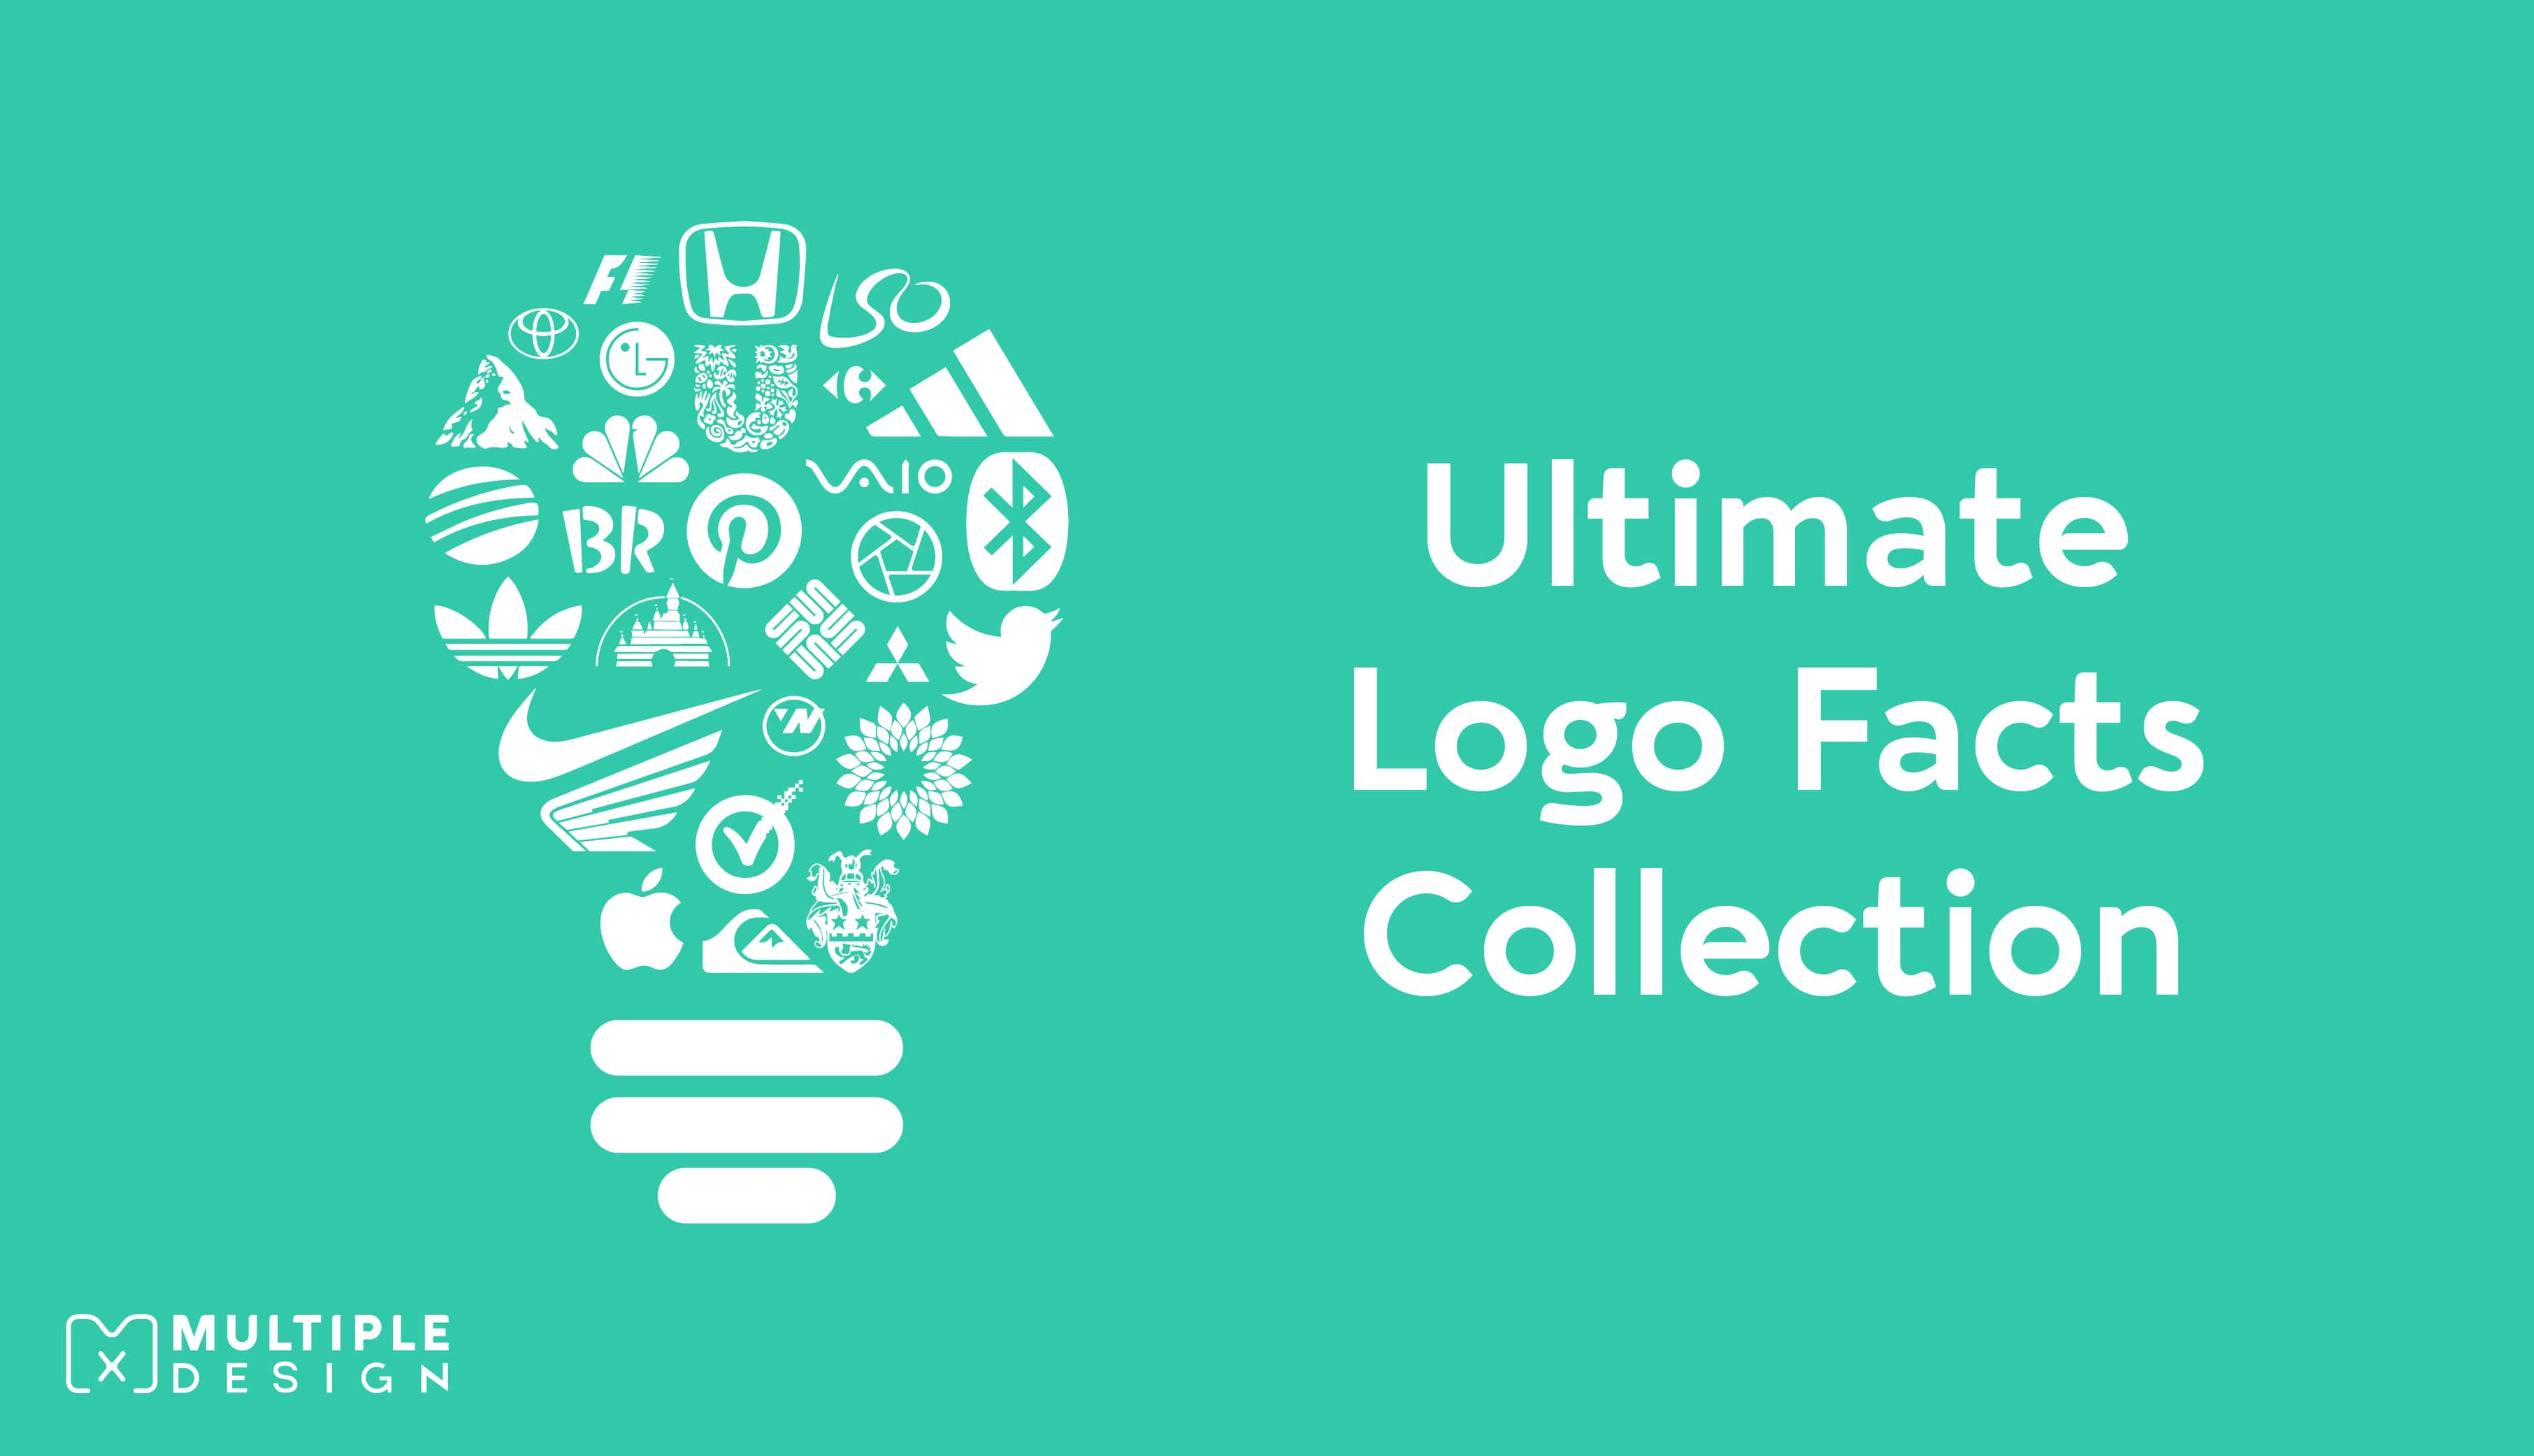 The Ultimate Logo Facts Collection: Updated Weekly